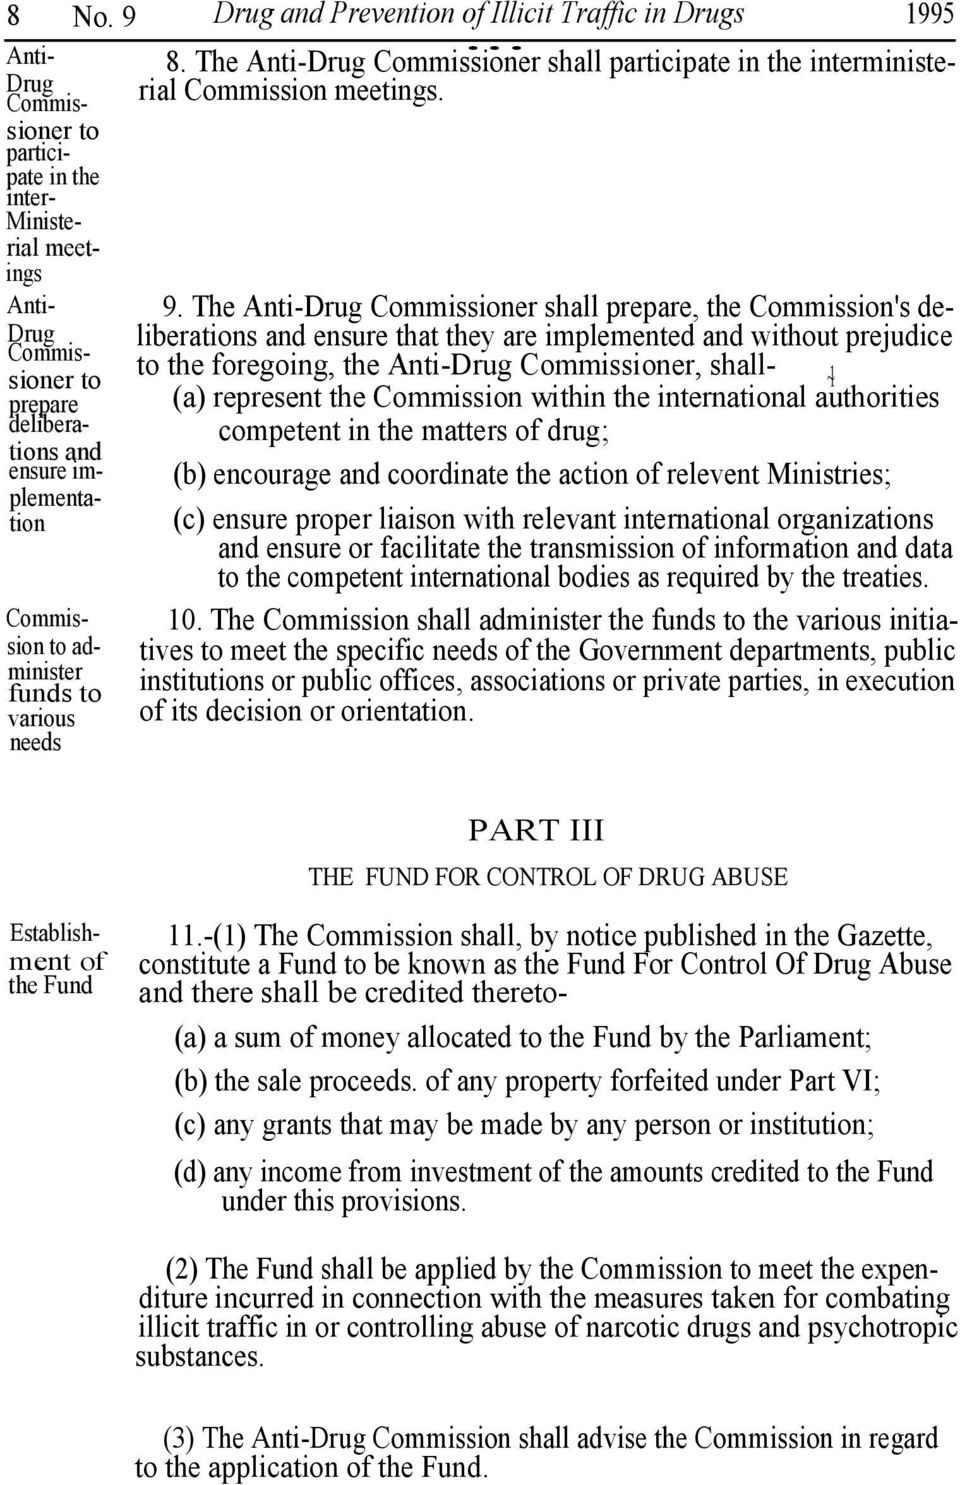 The Anti-Drug Commissioner shall prepare, the Commission's deliberations and ensure that they are implemented and without prejudice Drug Commissioner to 1~ to the foregoing, the Anti-Drug